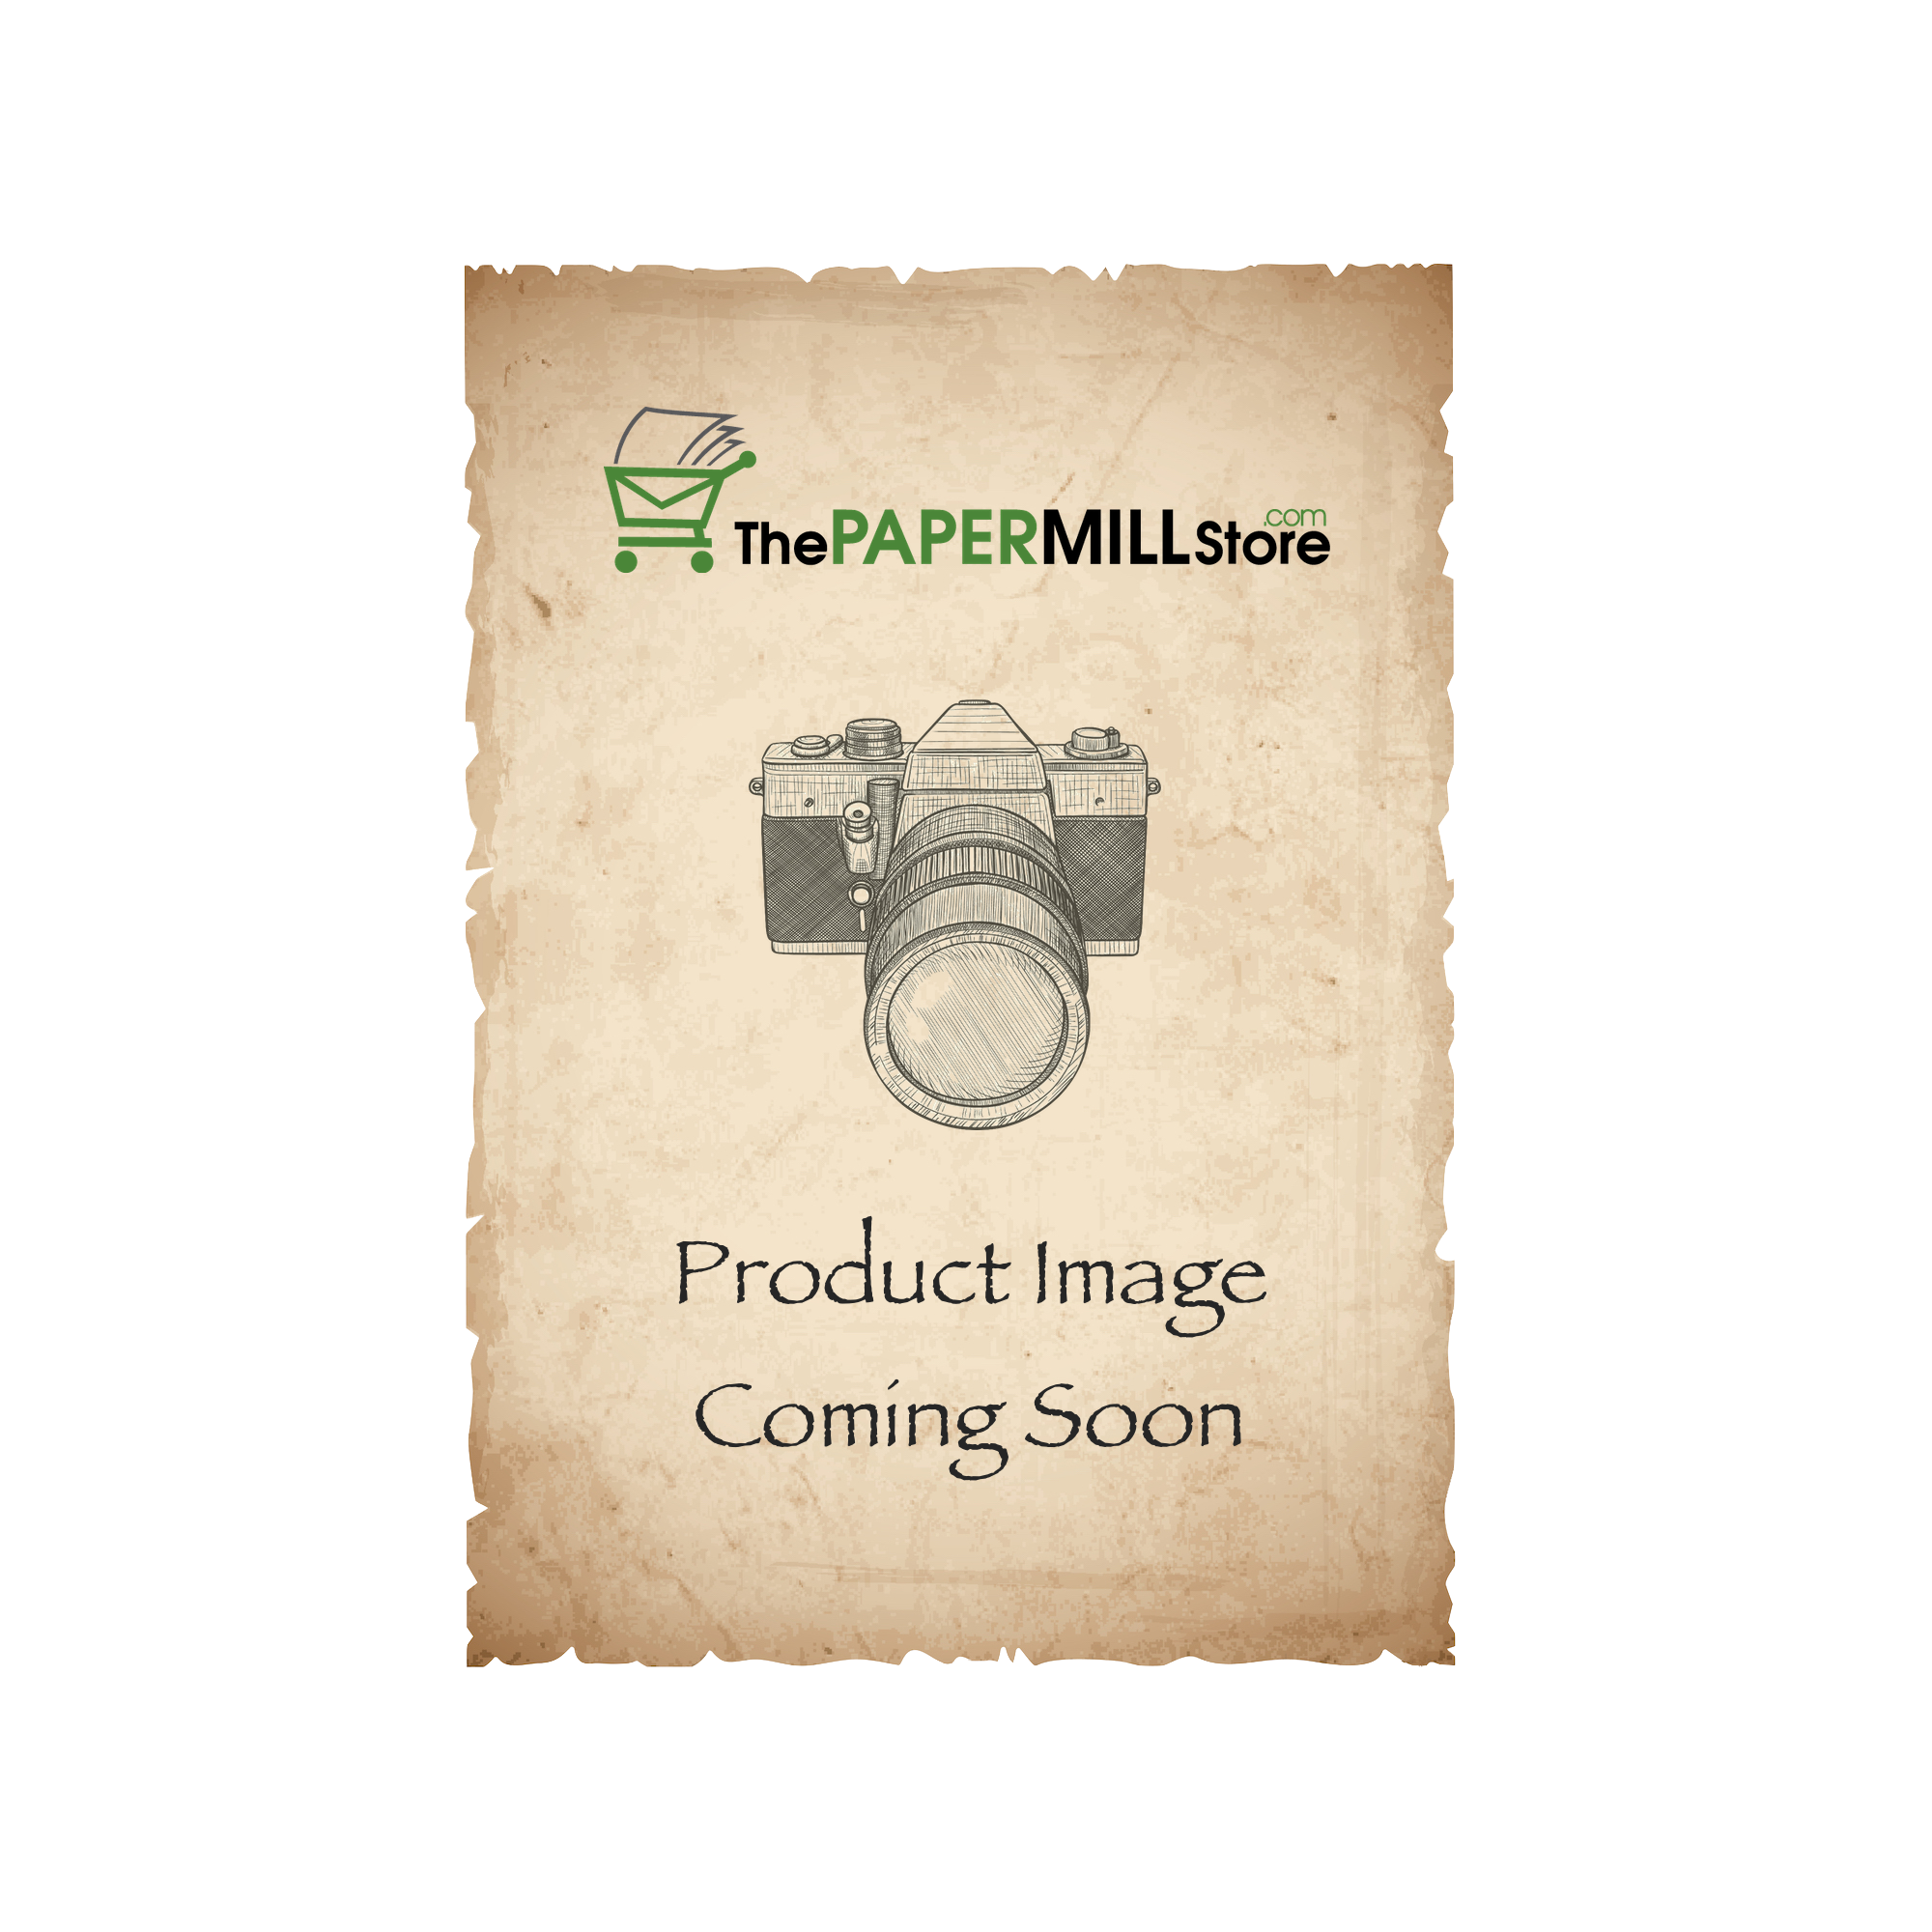 Buy Via Smooth Flax Paper - 23 x 35 in 70 lb Text Smooth  30% Recycled 1200 per Carton at The Paper Mill Store .com